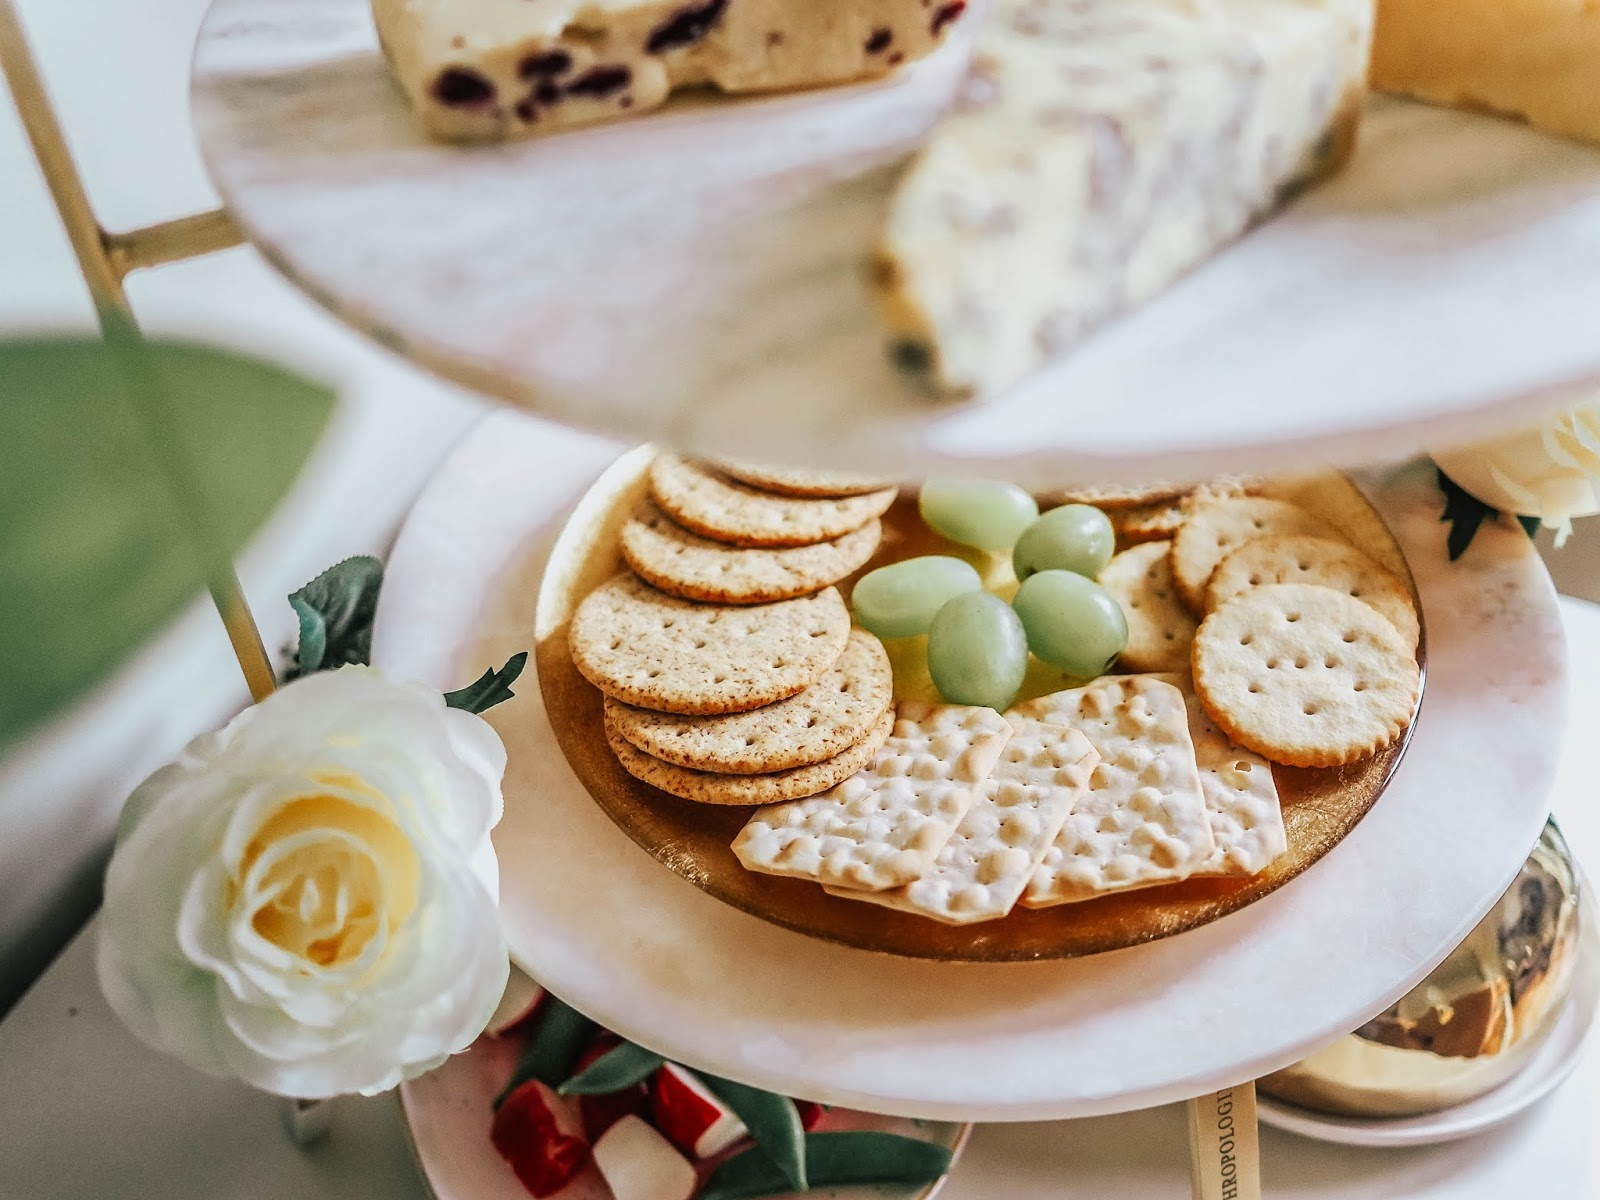 Grapes crackers and cheese